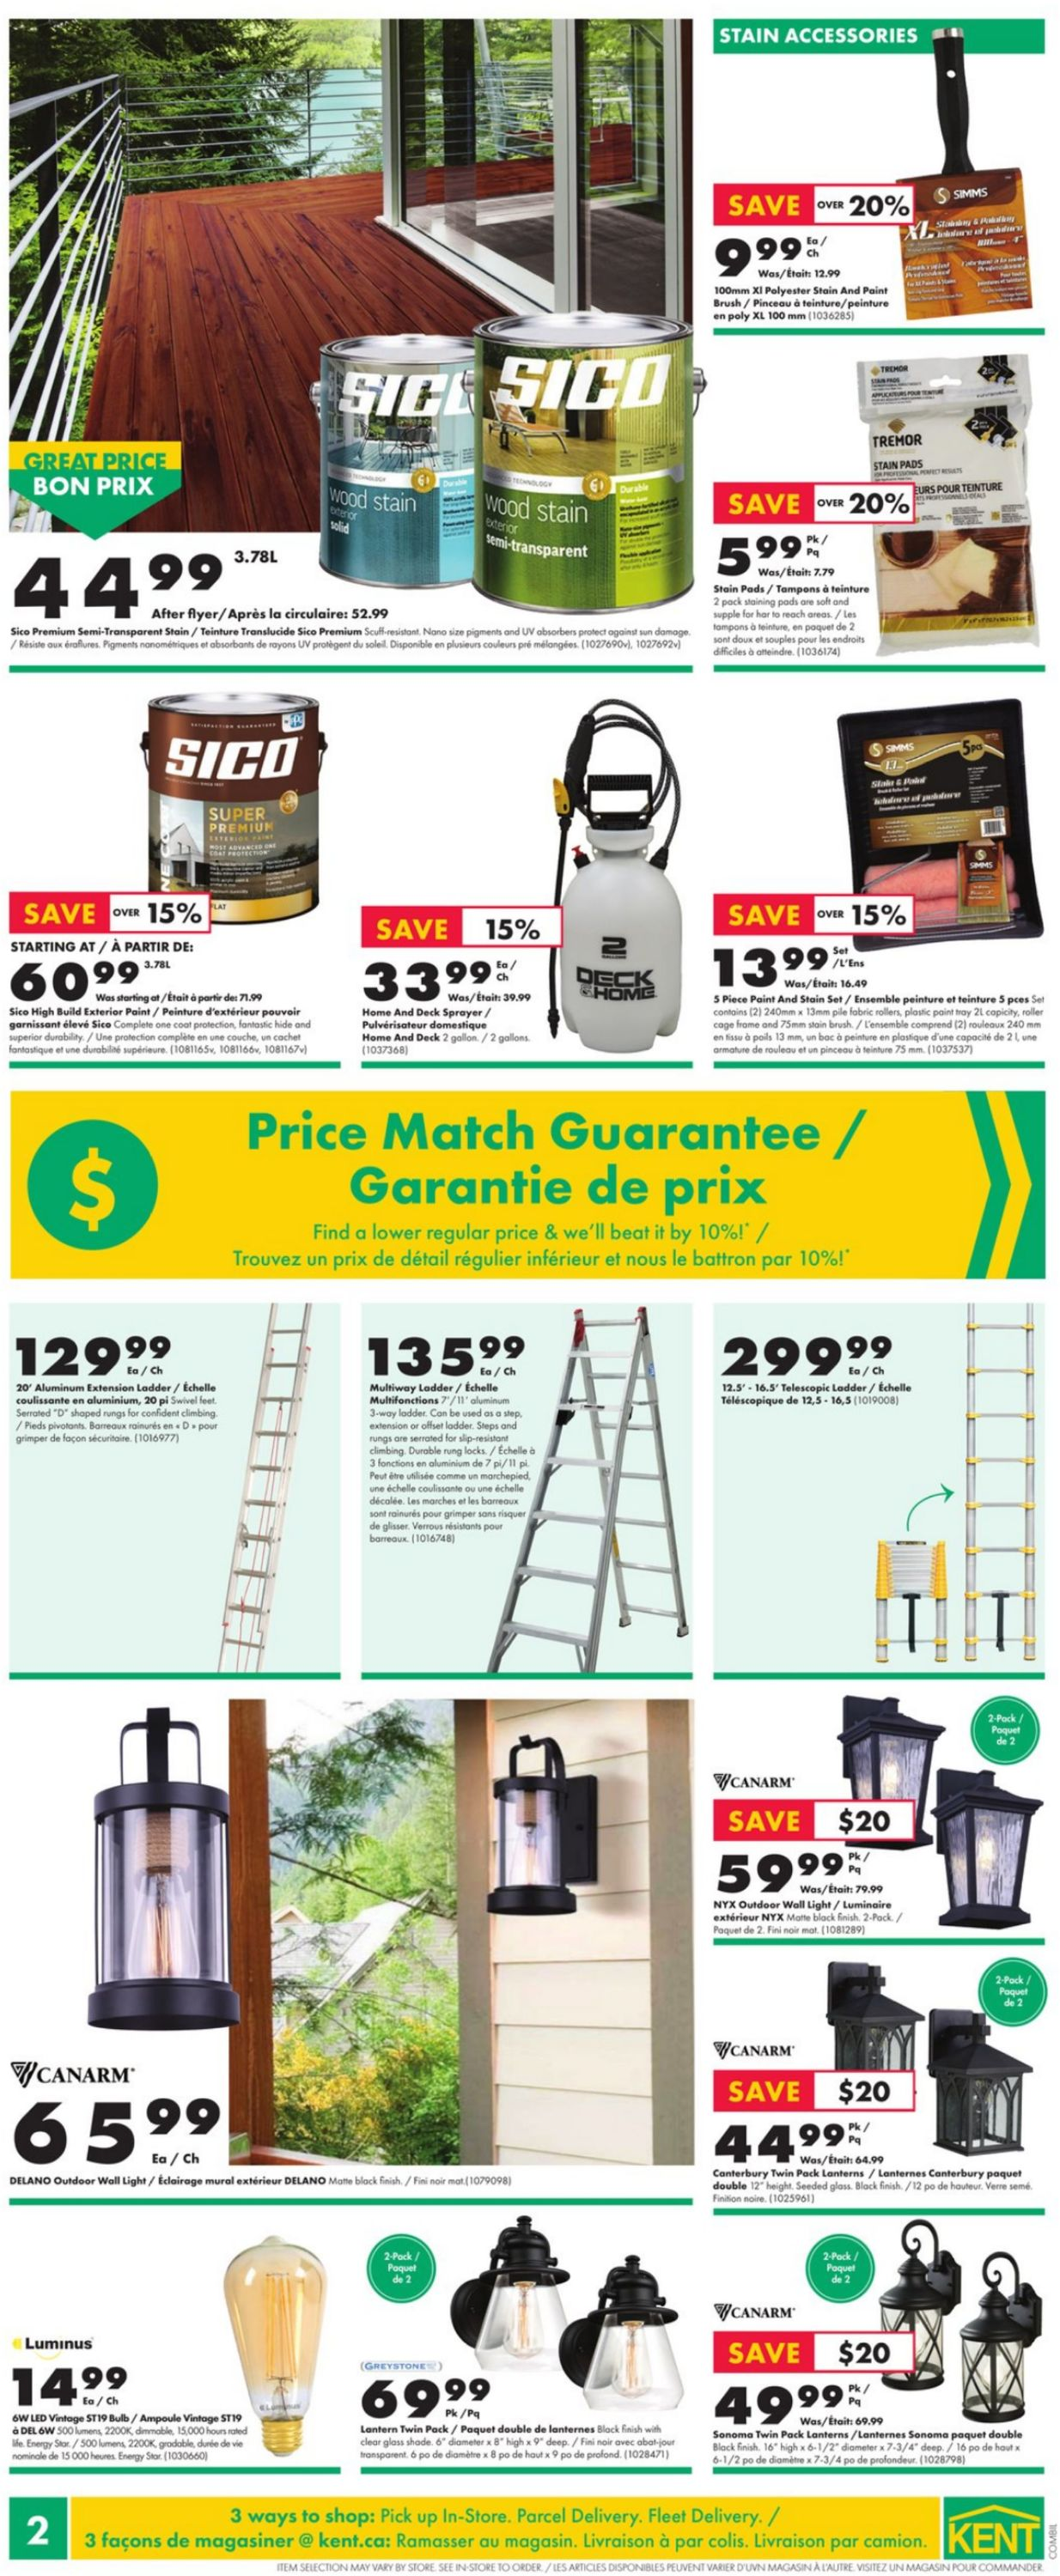 Kent Flyer - 07/22-07/28/2021 (Page 2)